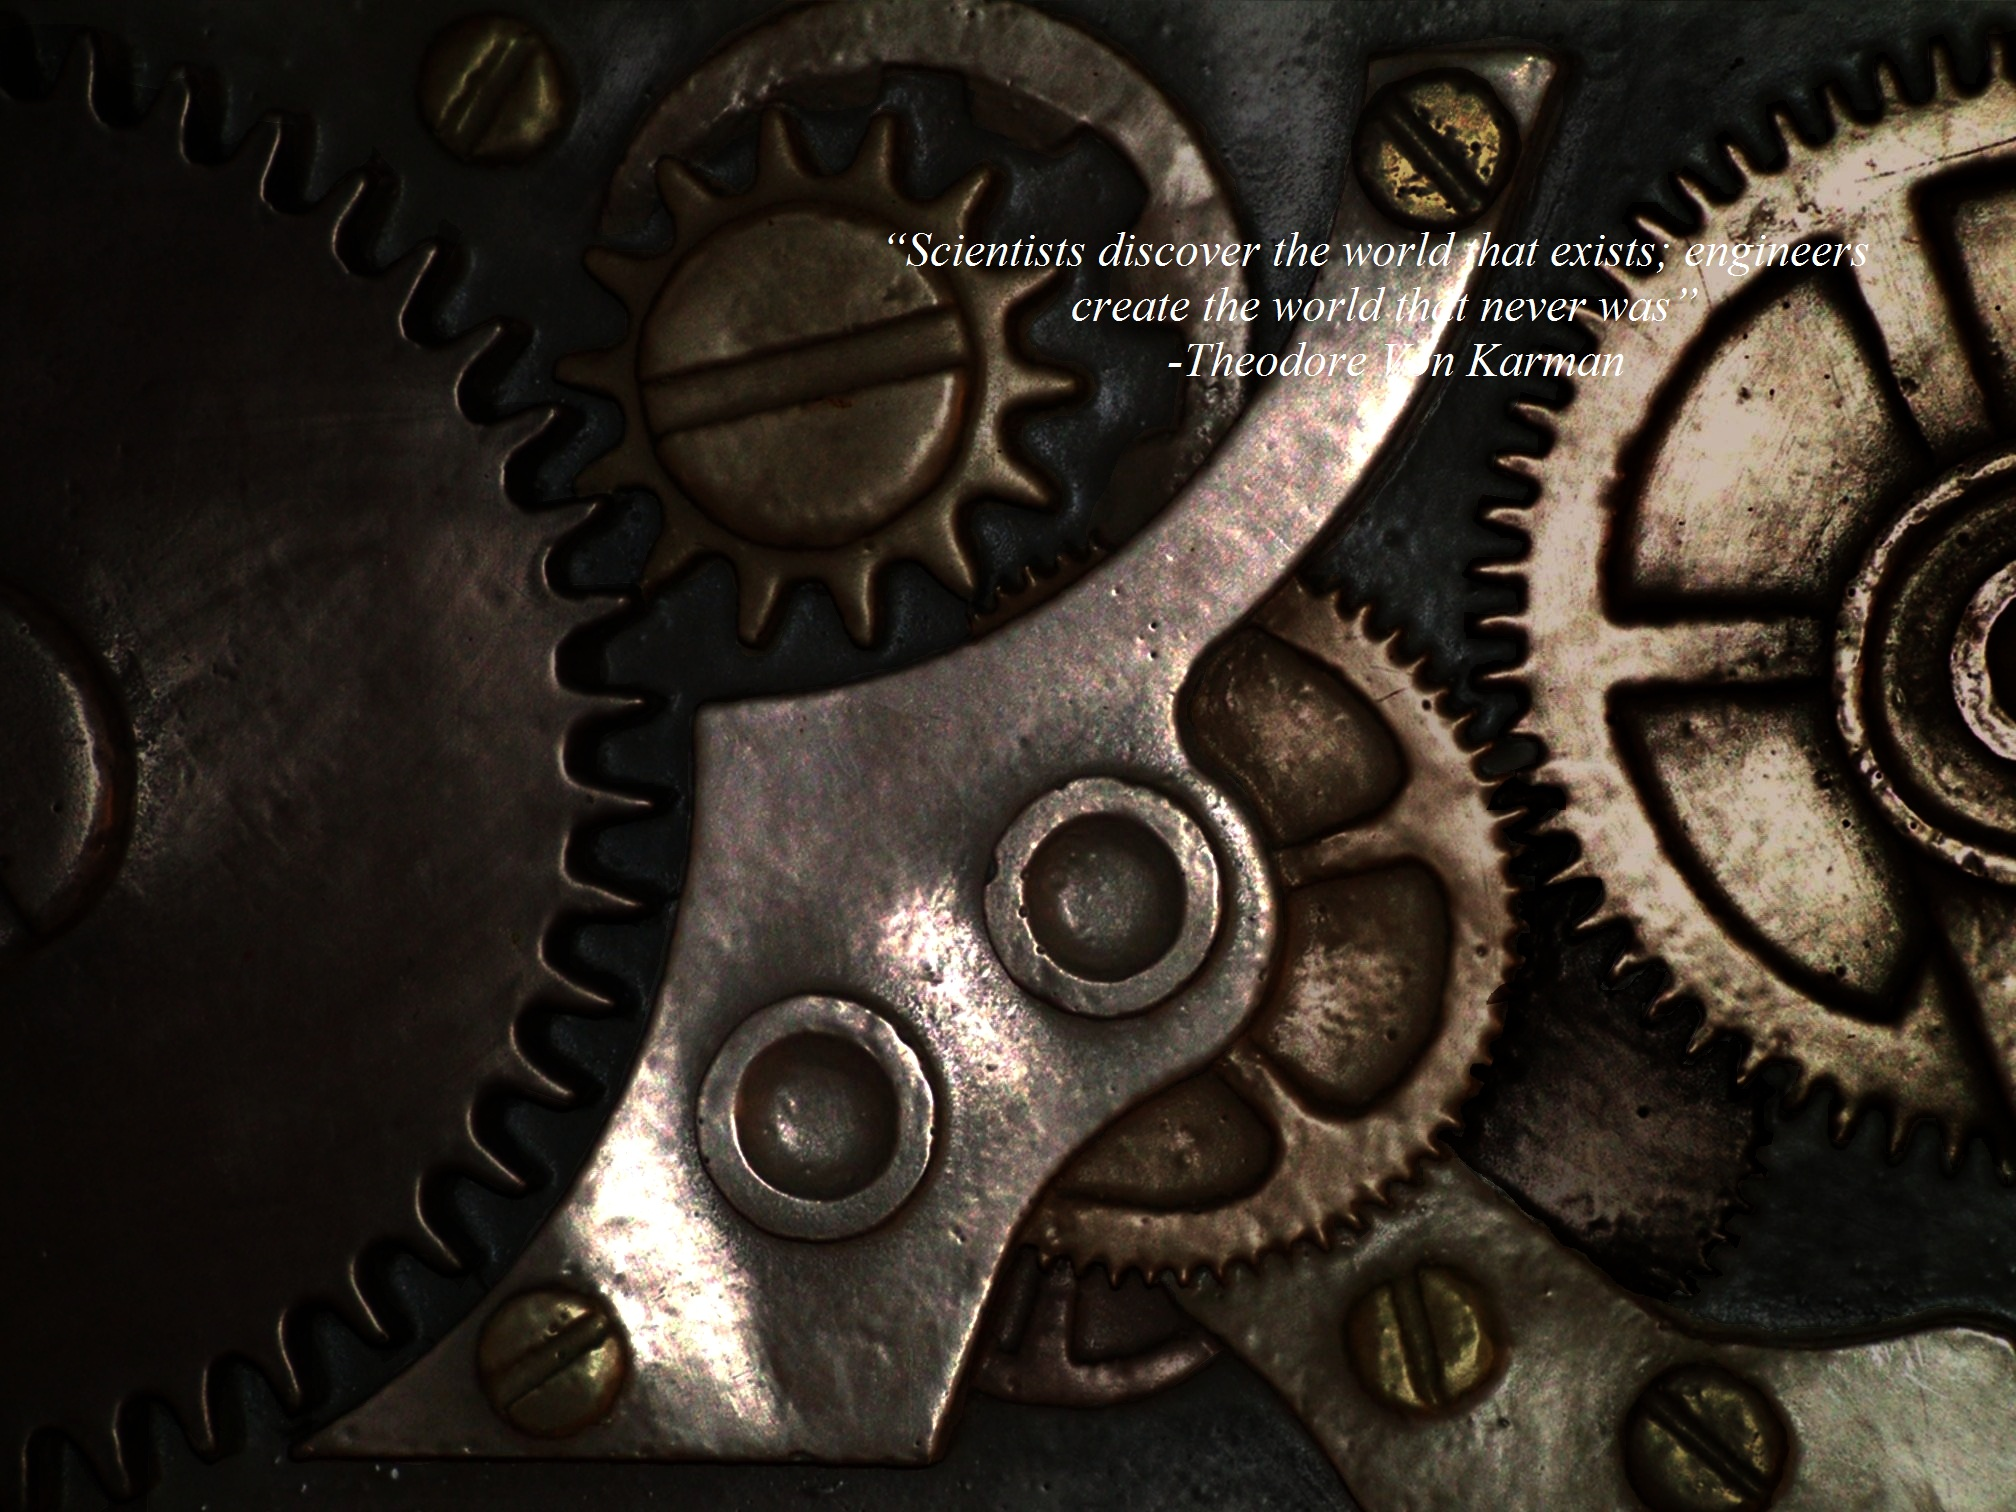 Steampunk Gears Wallpaper 2016x1512 Steampunk Gears None 2016x1512